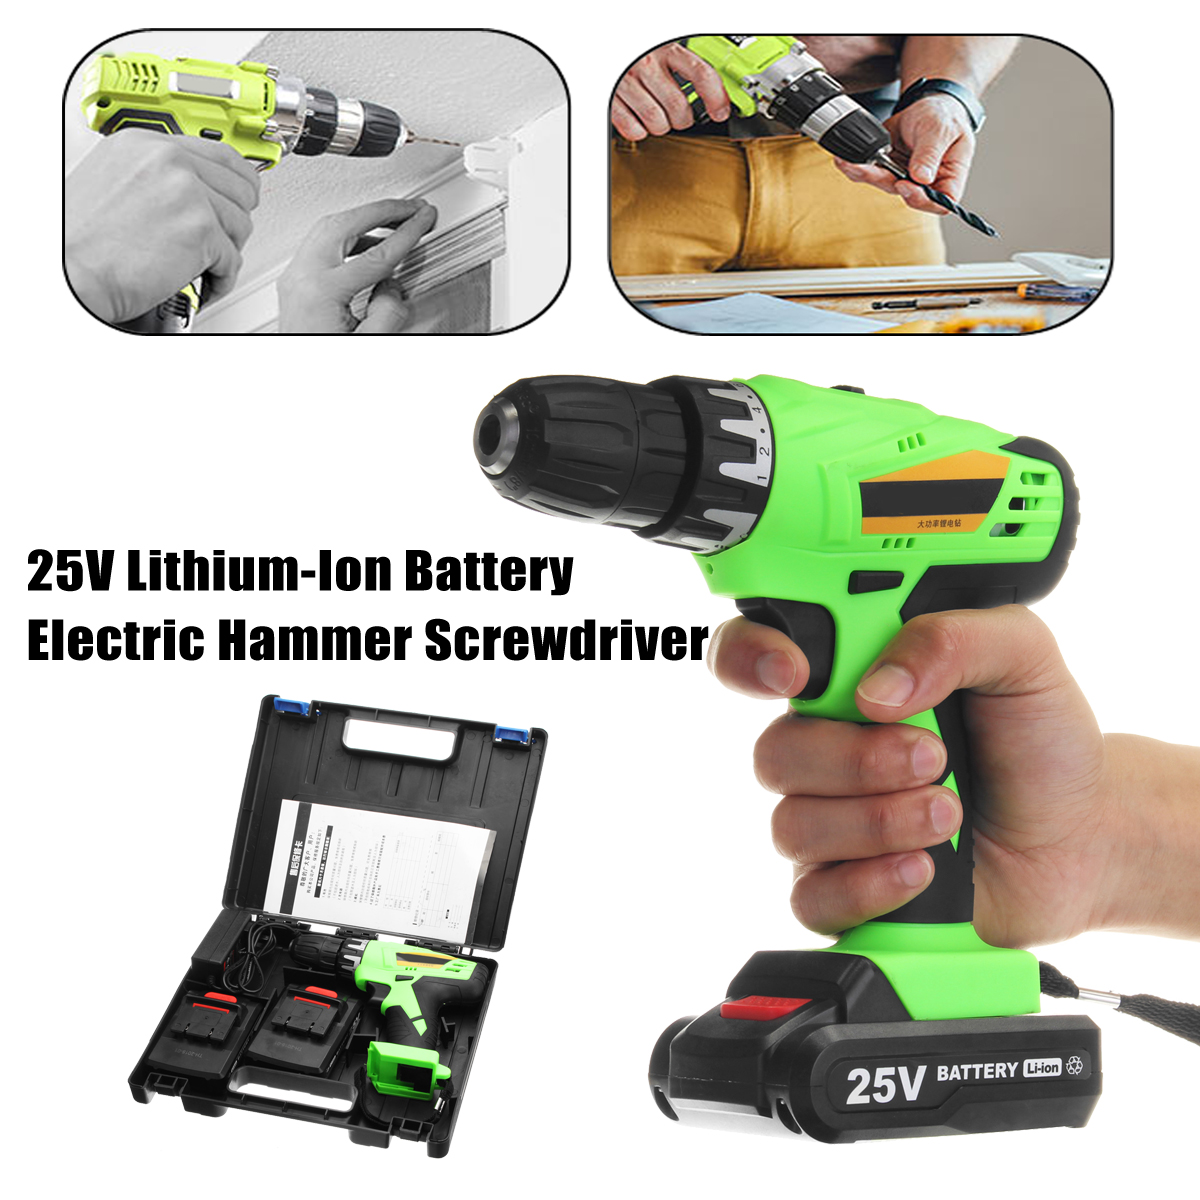 Electric Screwdriver 25V Cordless Power Drill Multifunction Kit Lithium-Ion Battery Rechargeable Home Power Tools